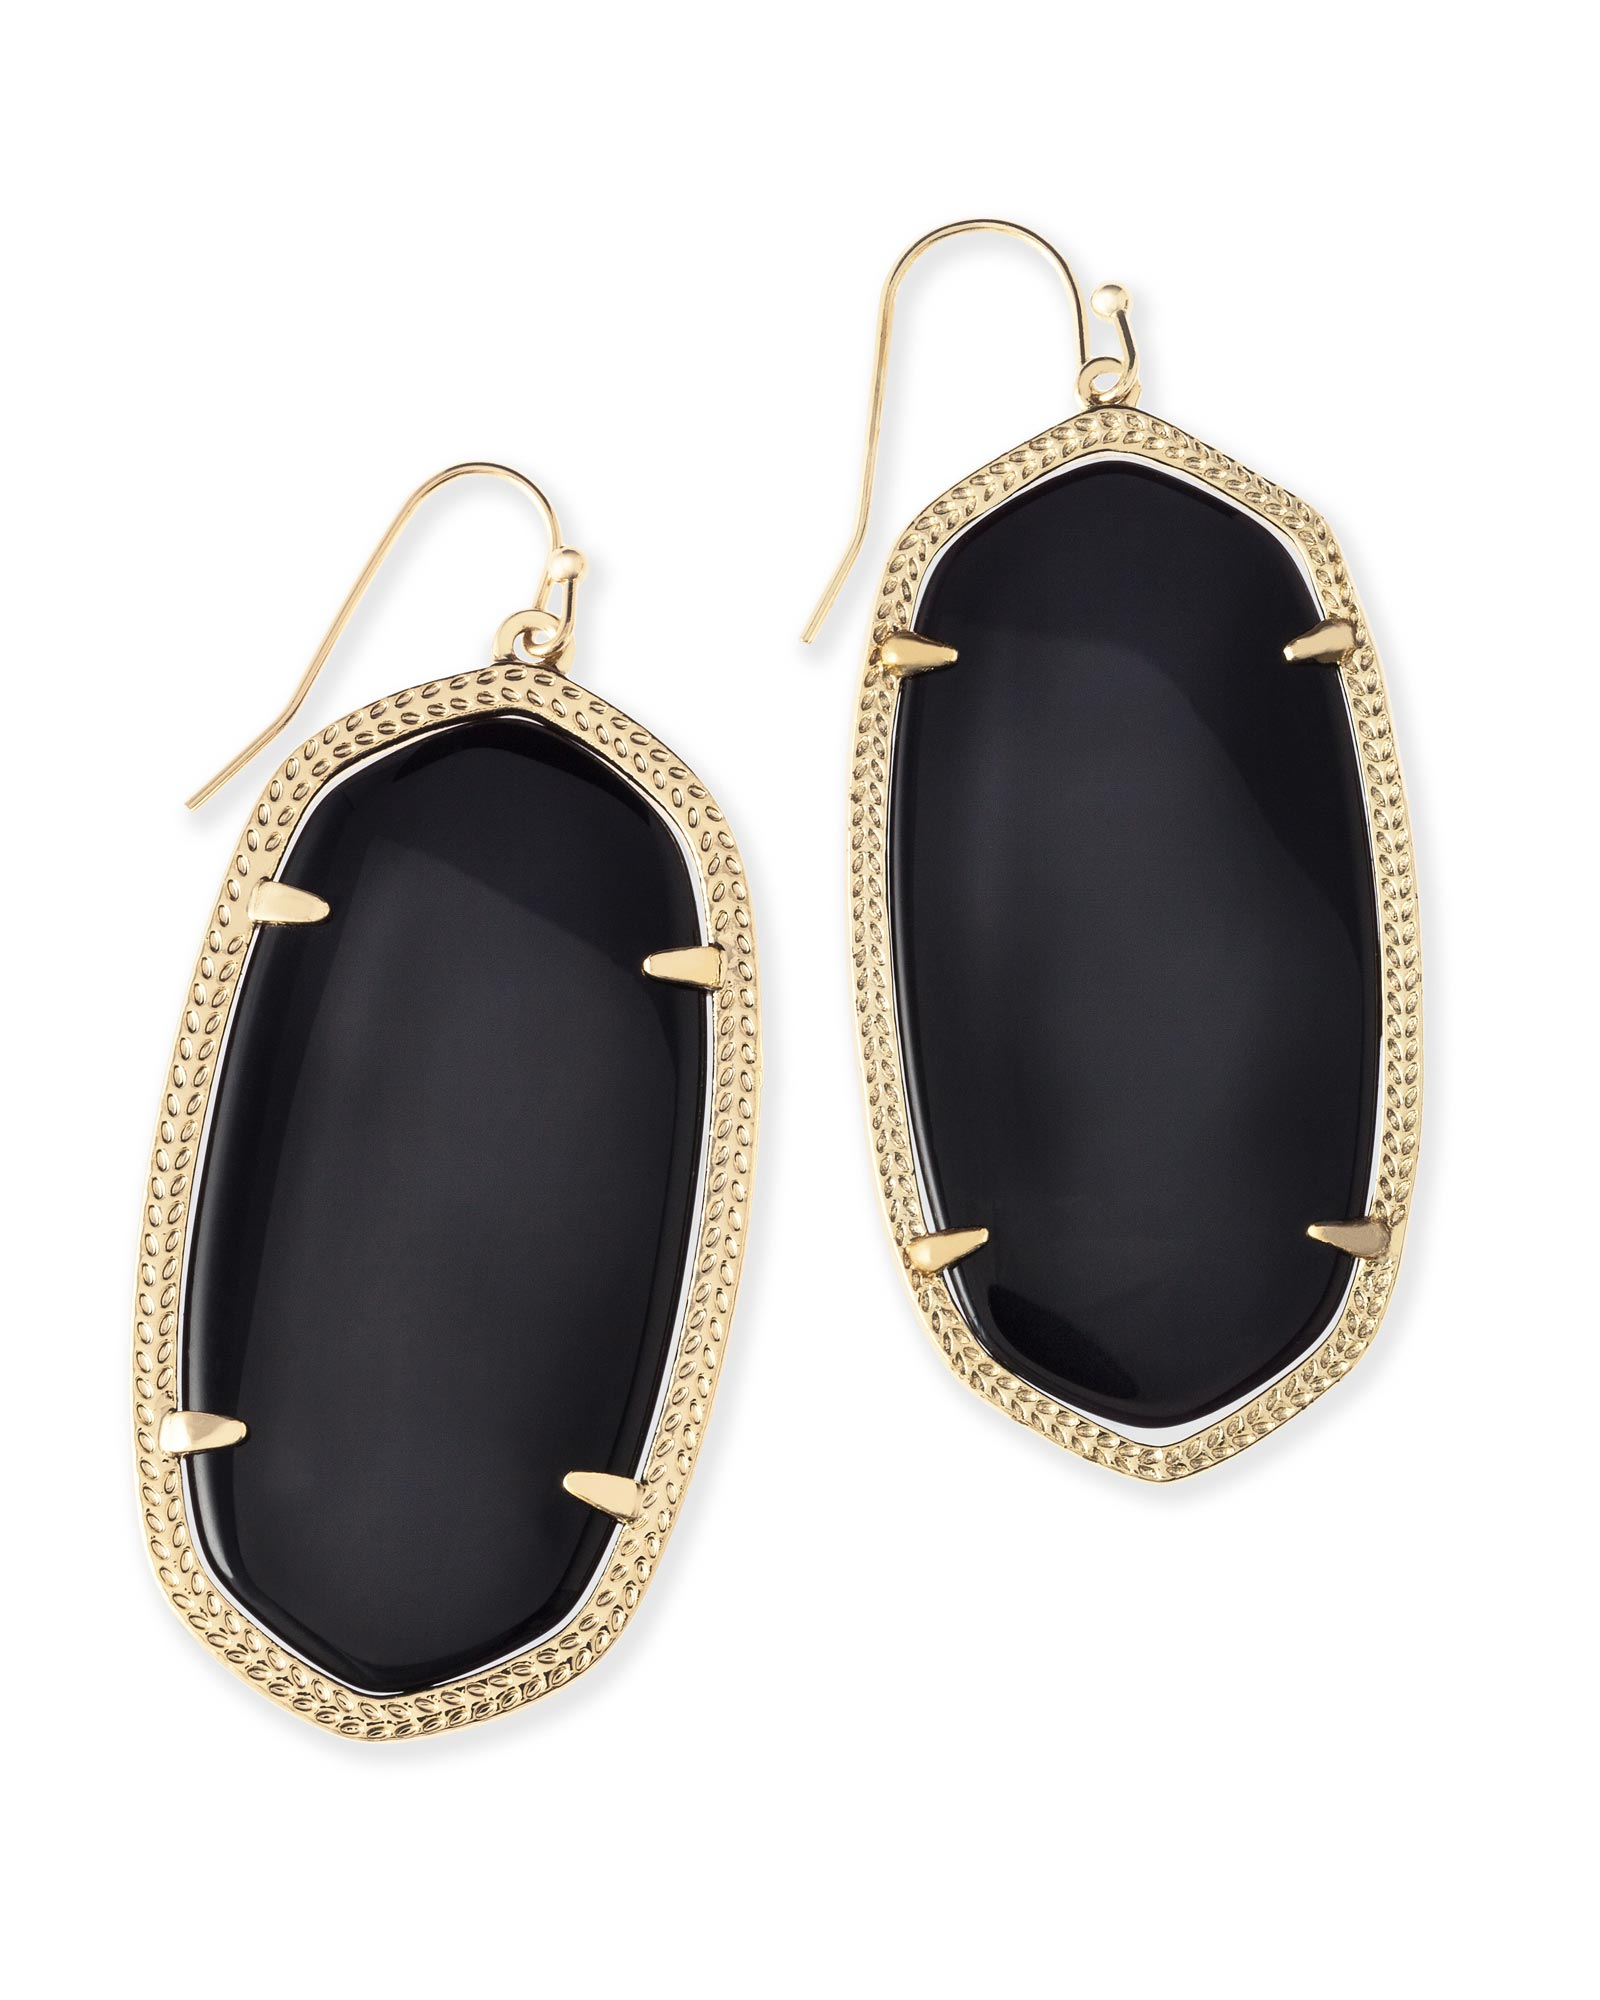 KENDRA SCOTT DANIELLE EARRINGS IN GOLD